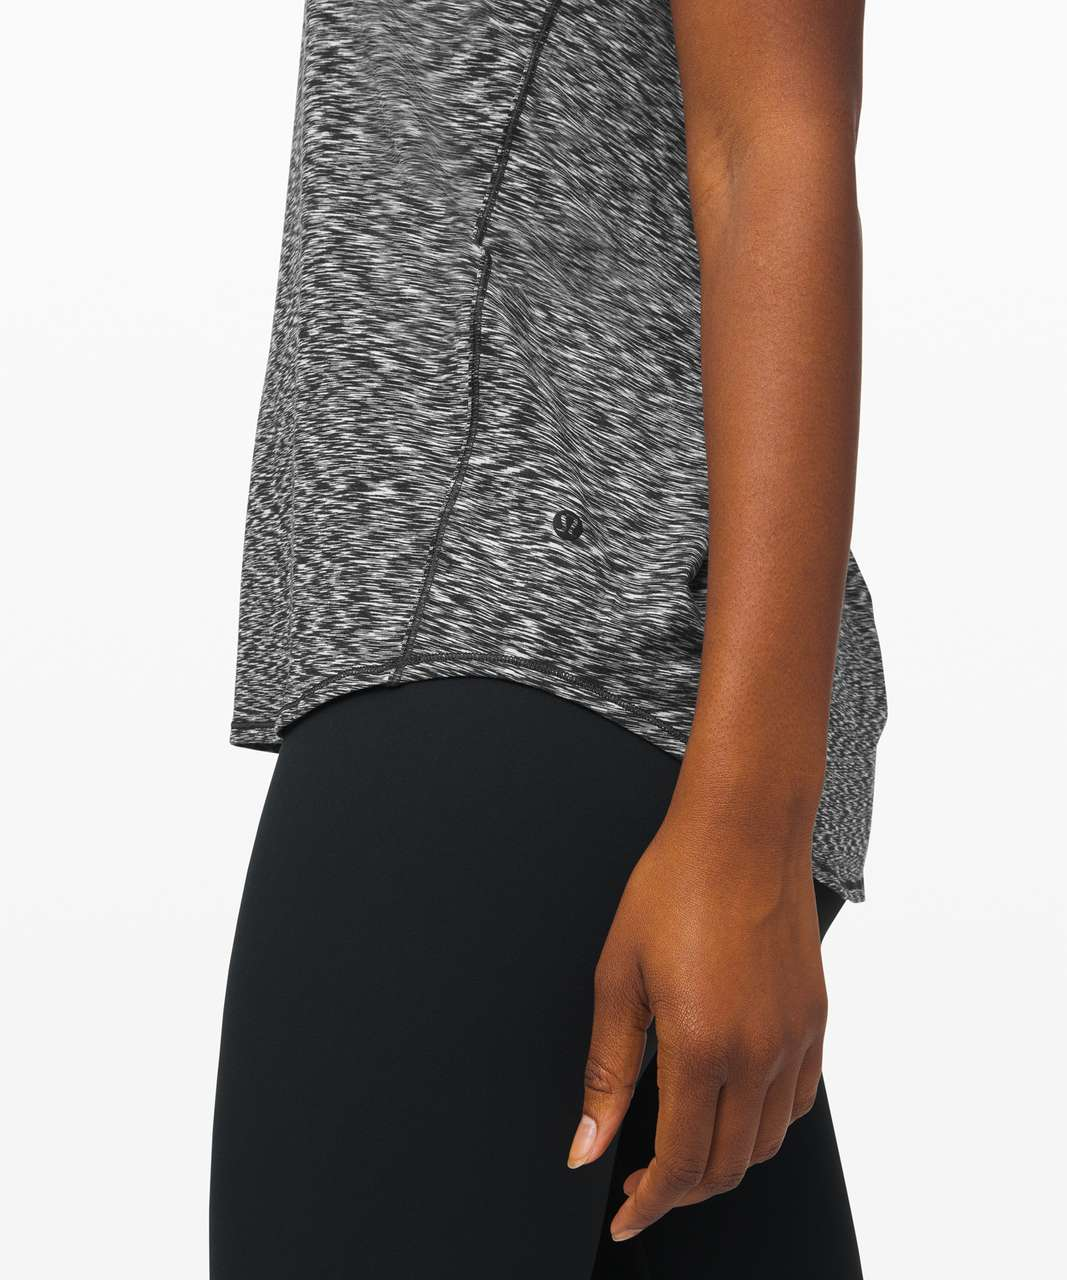 Lululemon Essential Tank *Pleated - Spaced Out Space Dye Black White